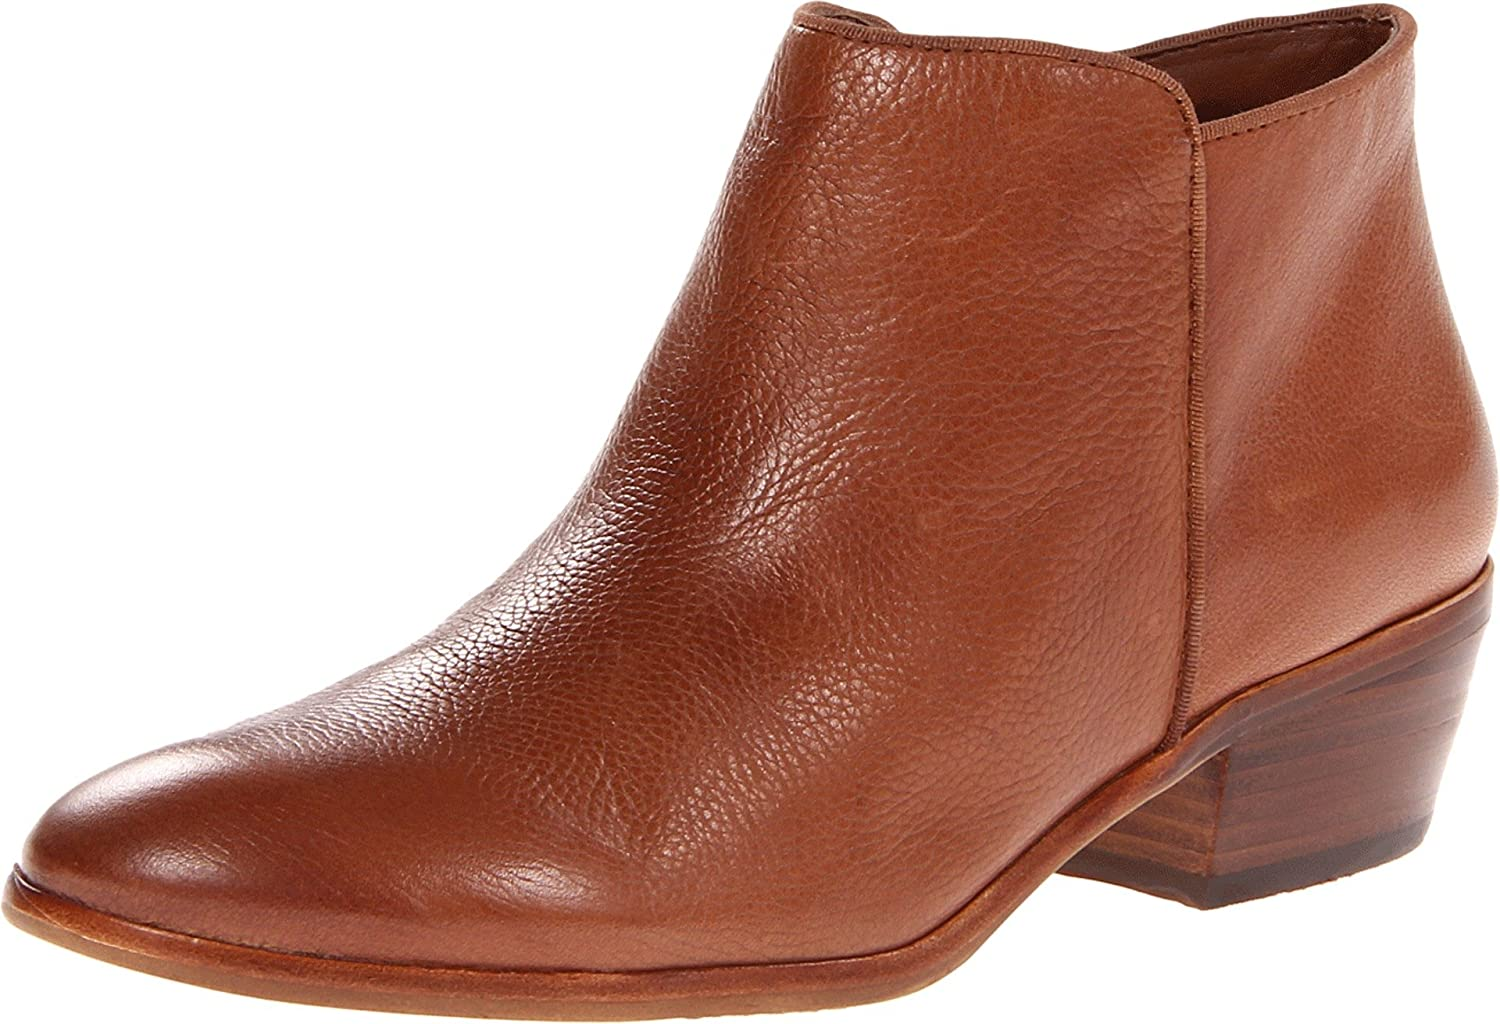 Sam Edelman Women's Petty Ankle Boot B005ADD6QC 5.5 B(M) US|Saddle Leather